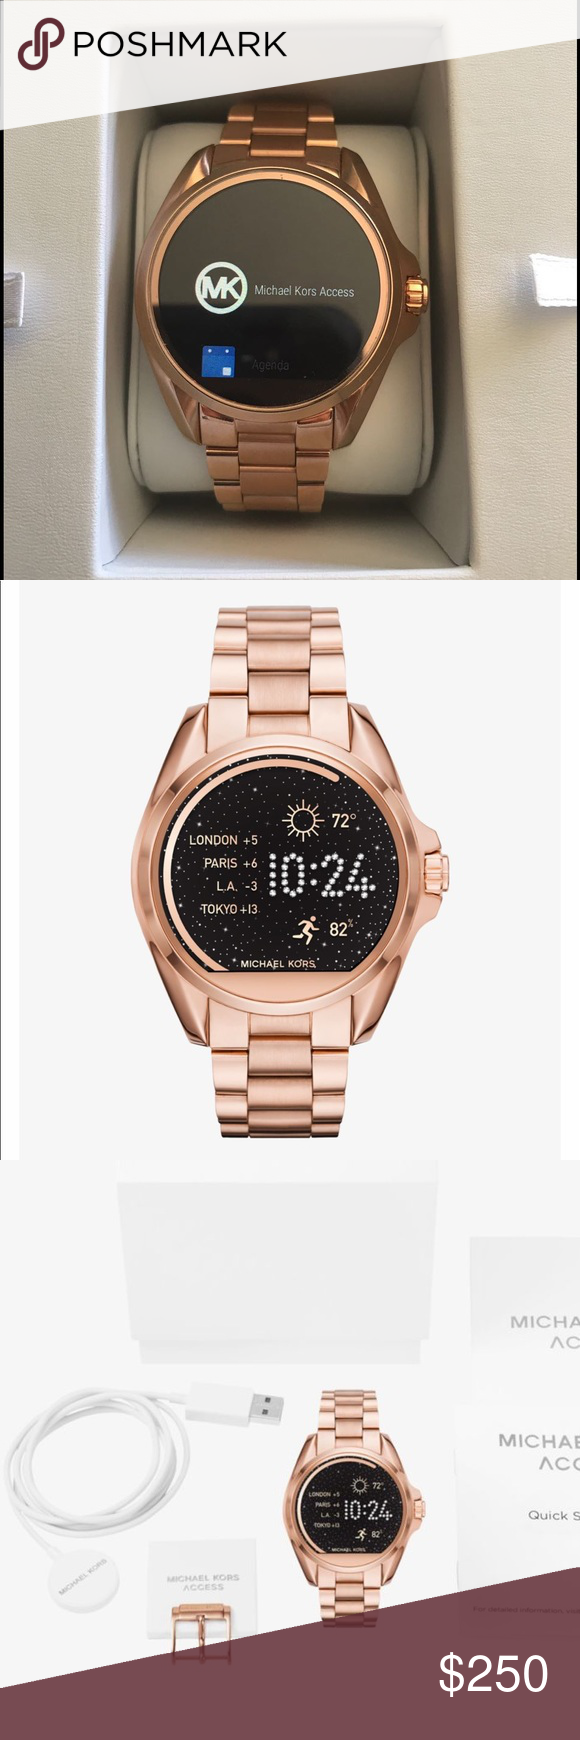 Michael Kors smartwatch The Michael Kors access Bradshaw rose-gold tone smart  watch. Worn once. Includes everything from original packaging. 69a6c4b1b3